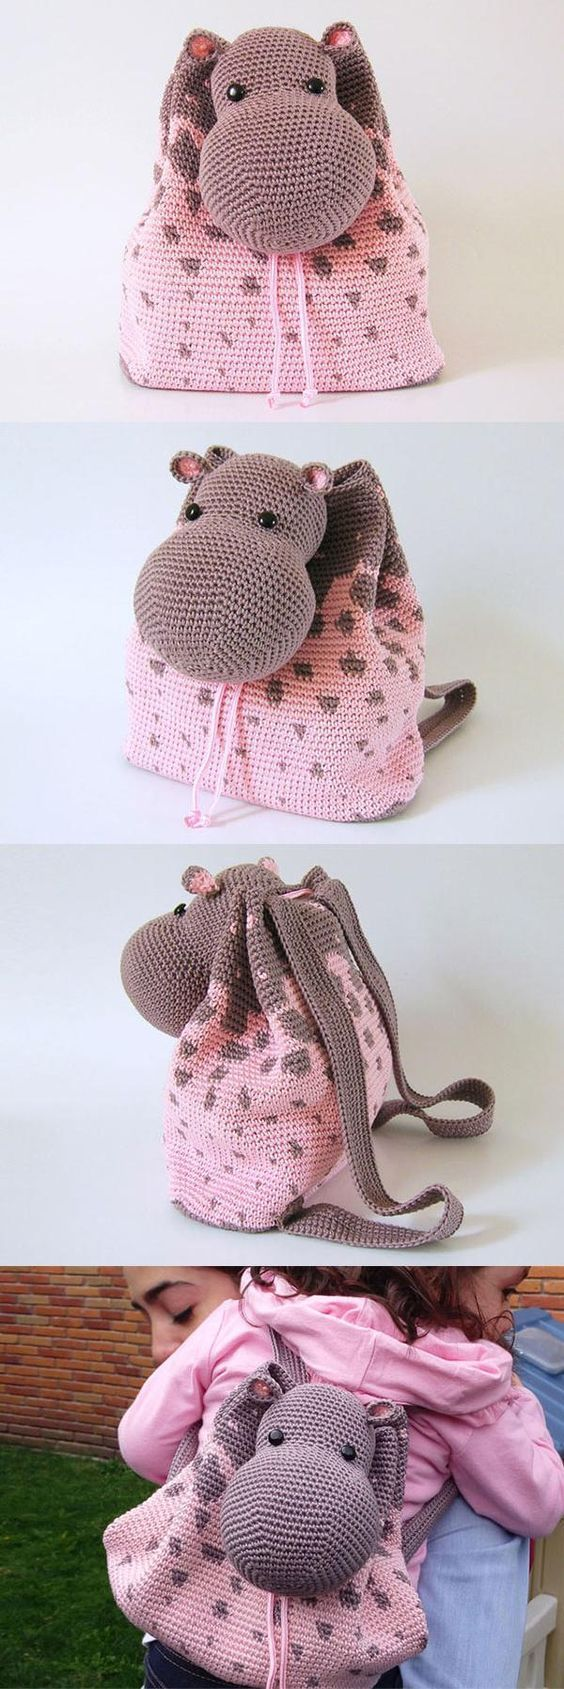 Crochet Backpack Bag Pattern Lots Of Free Tutorials   The WHOot